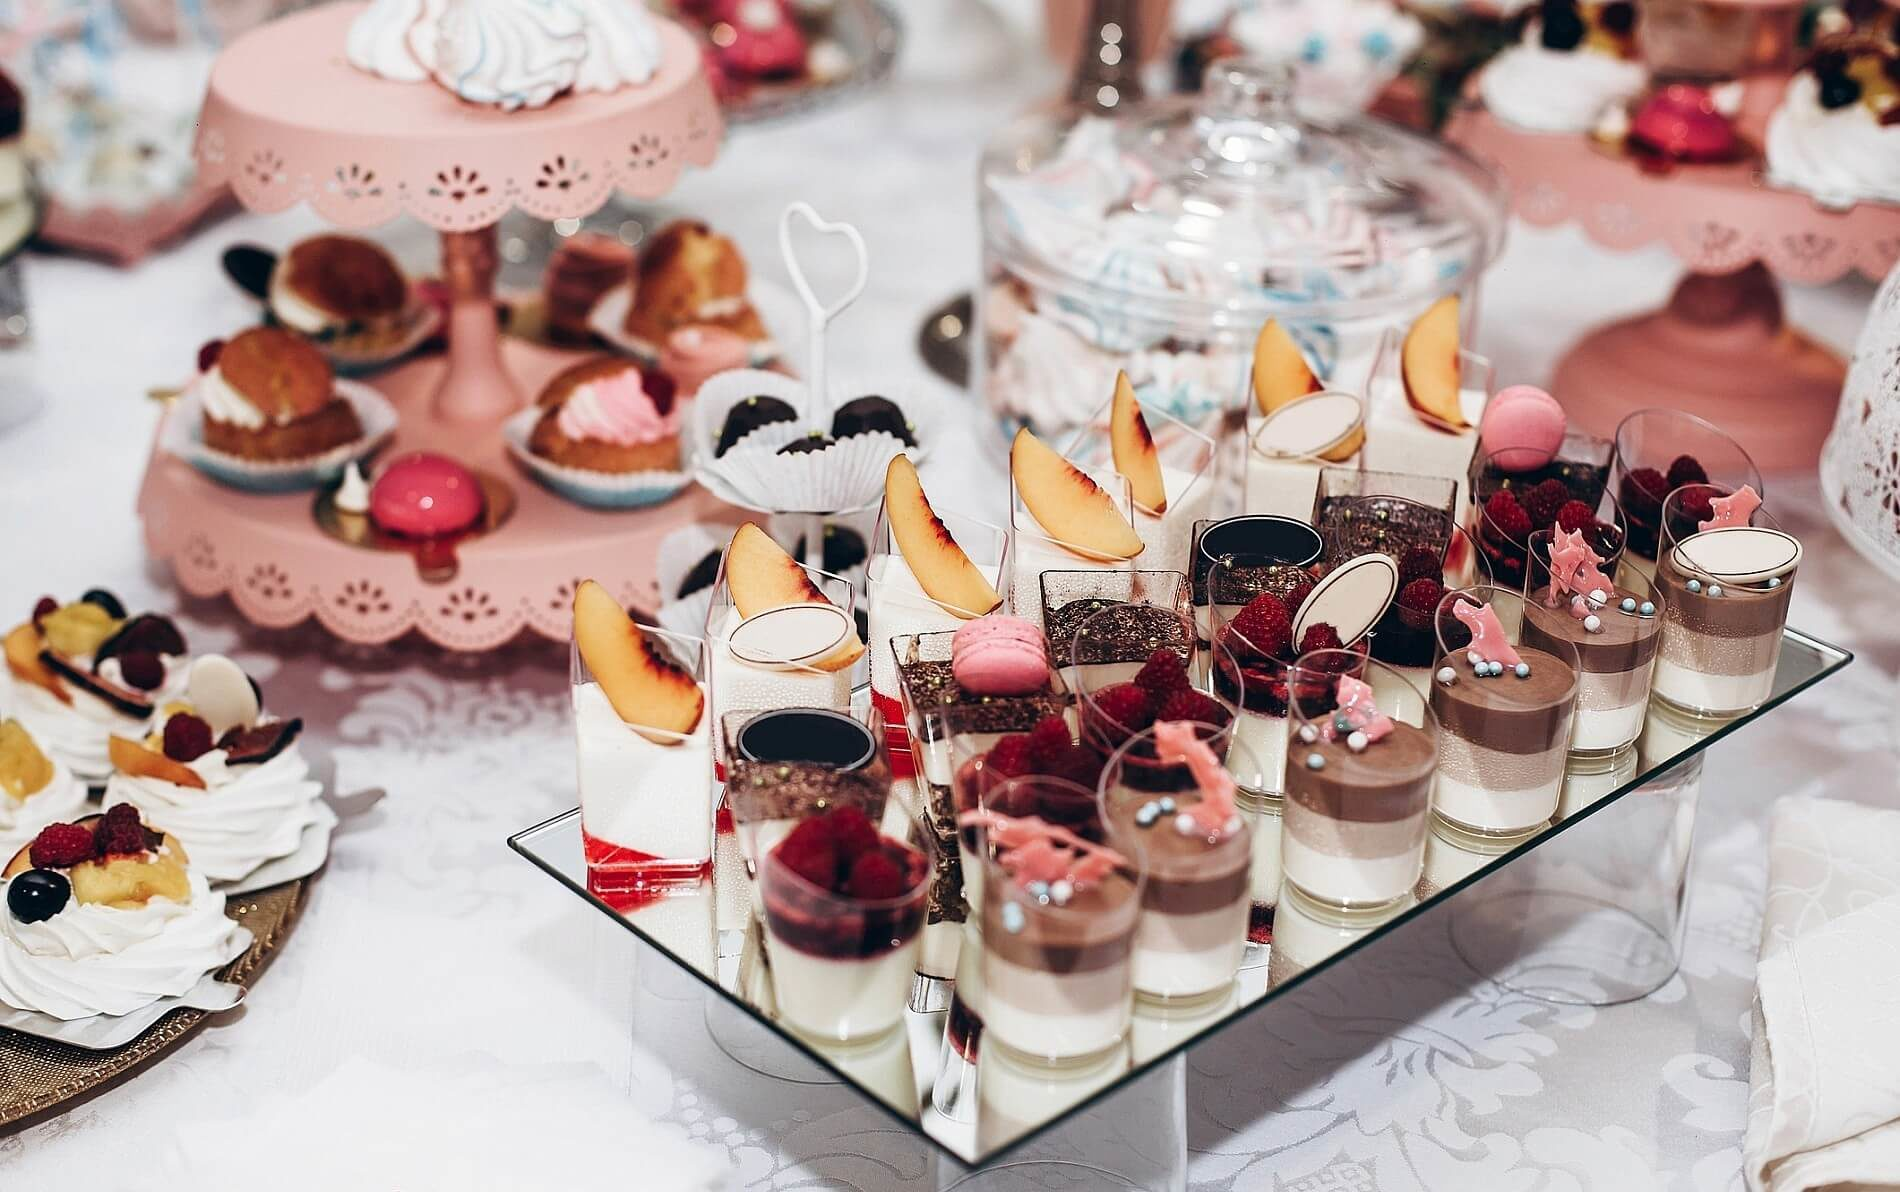 Table with dessert plates of chocolate pudding, fresh peaches, pink cookies